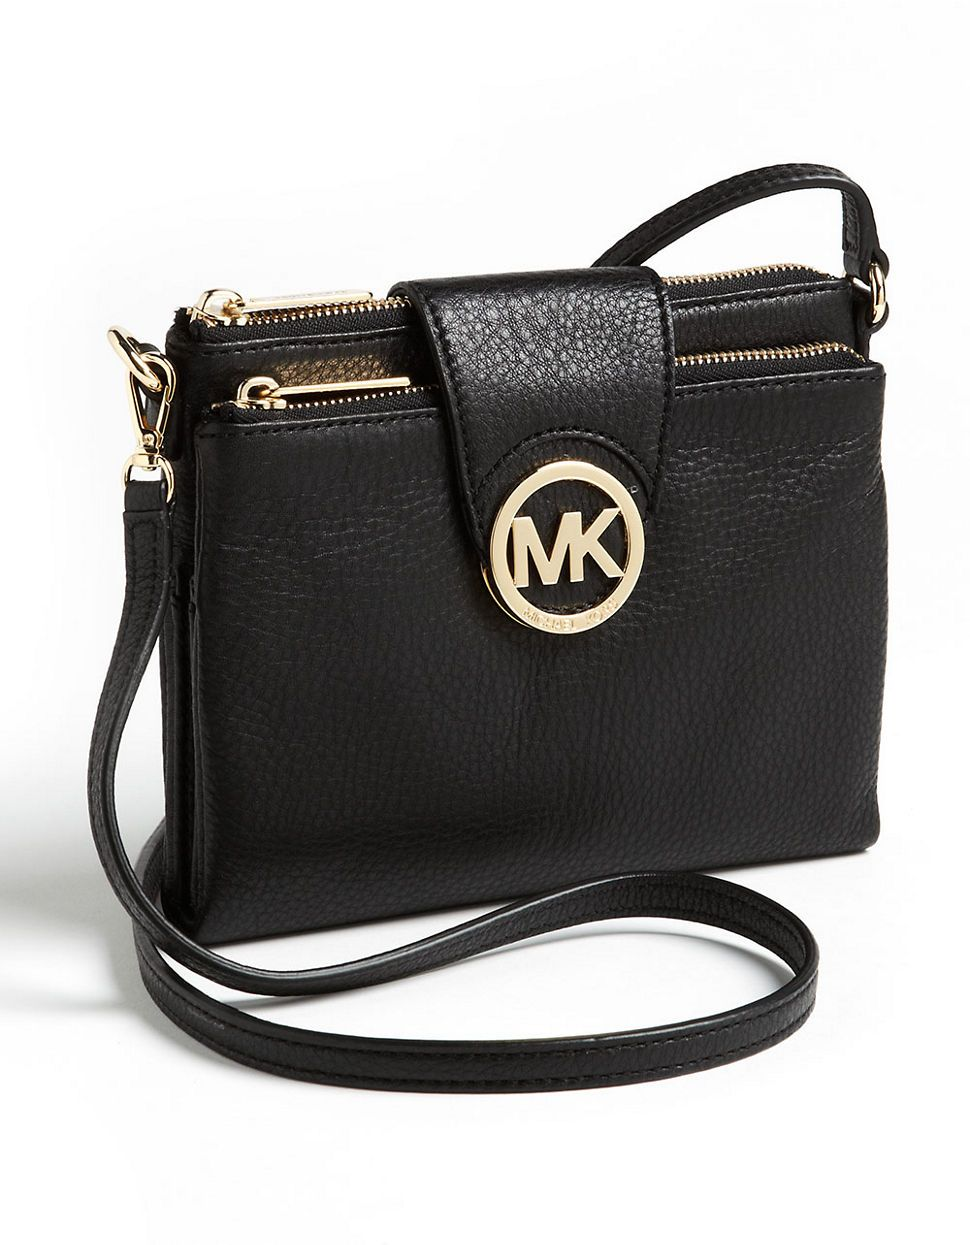 4ccfd6c89268 Michael Michael Kors Fulton Crossbody Bag Black | Women's Fashion ...